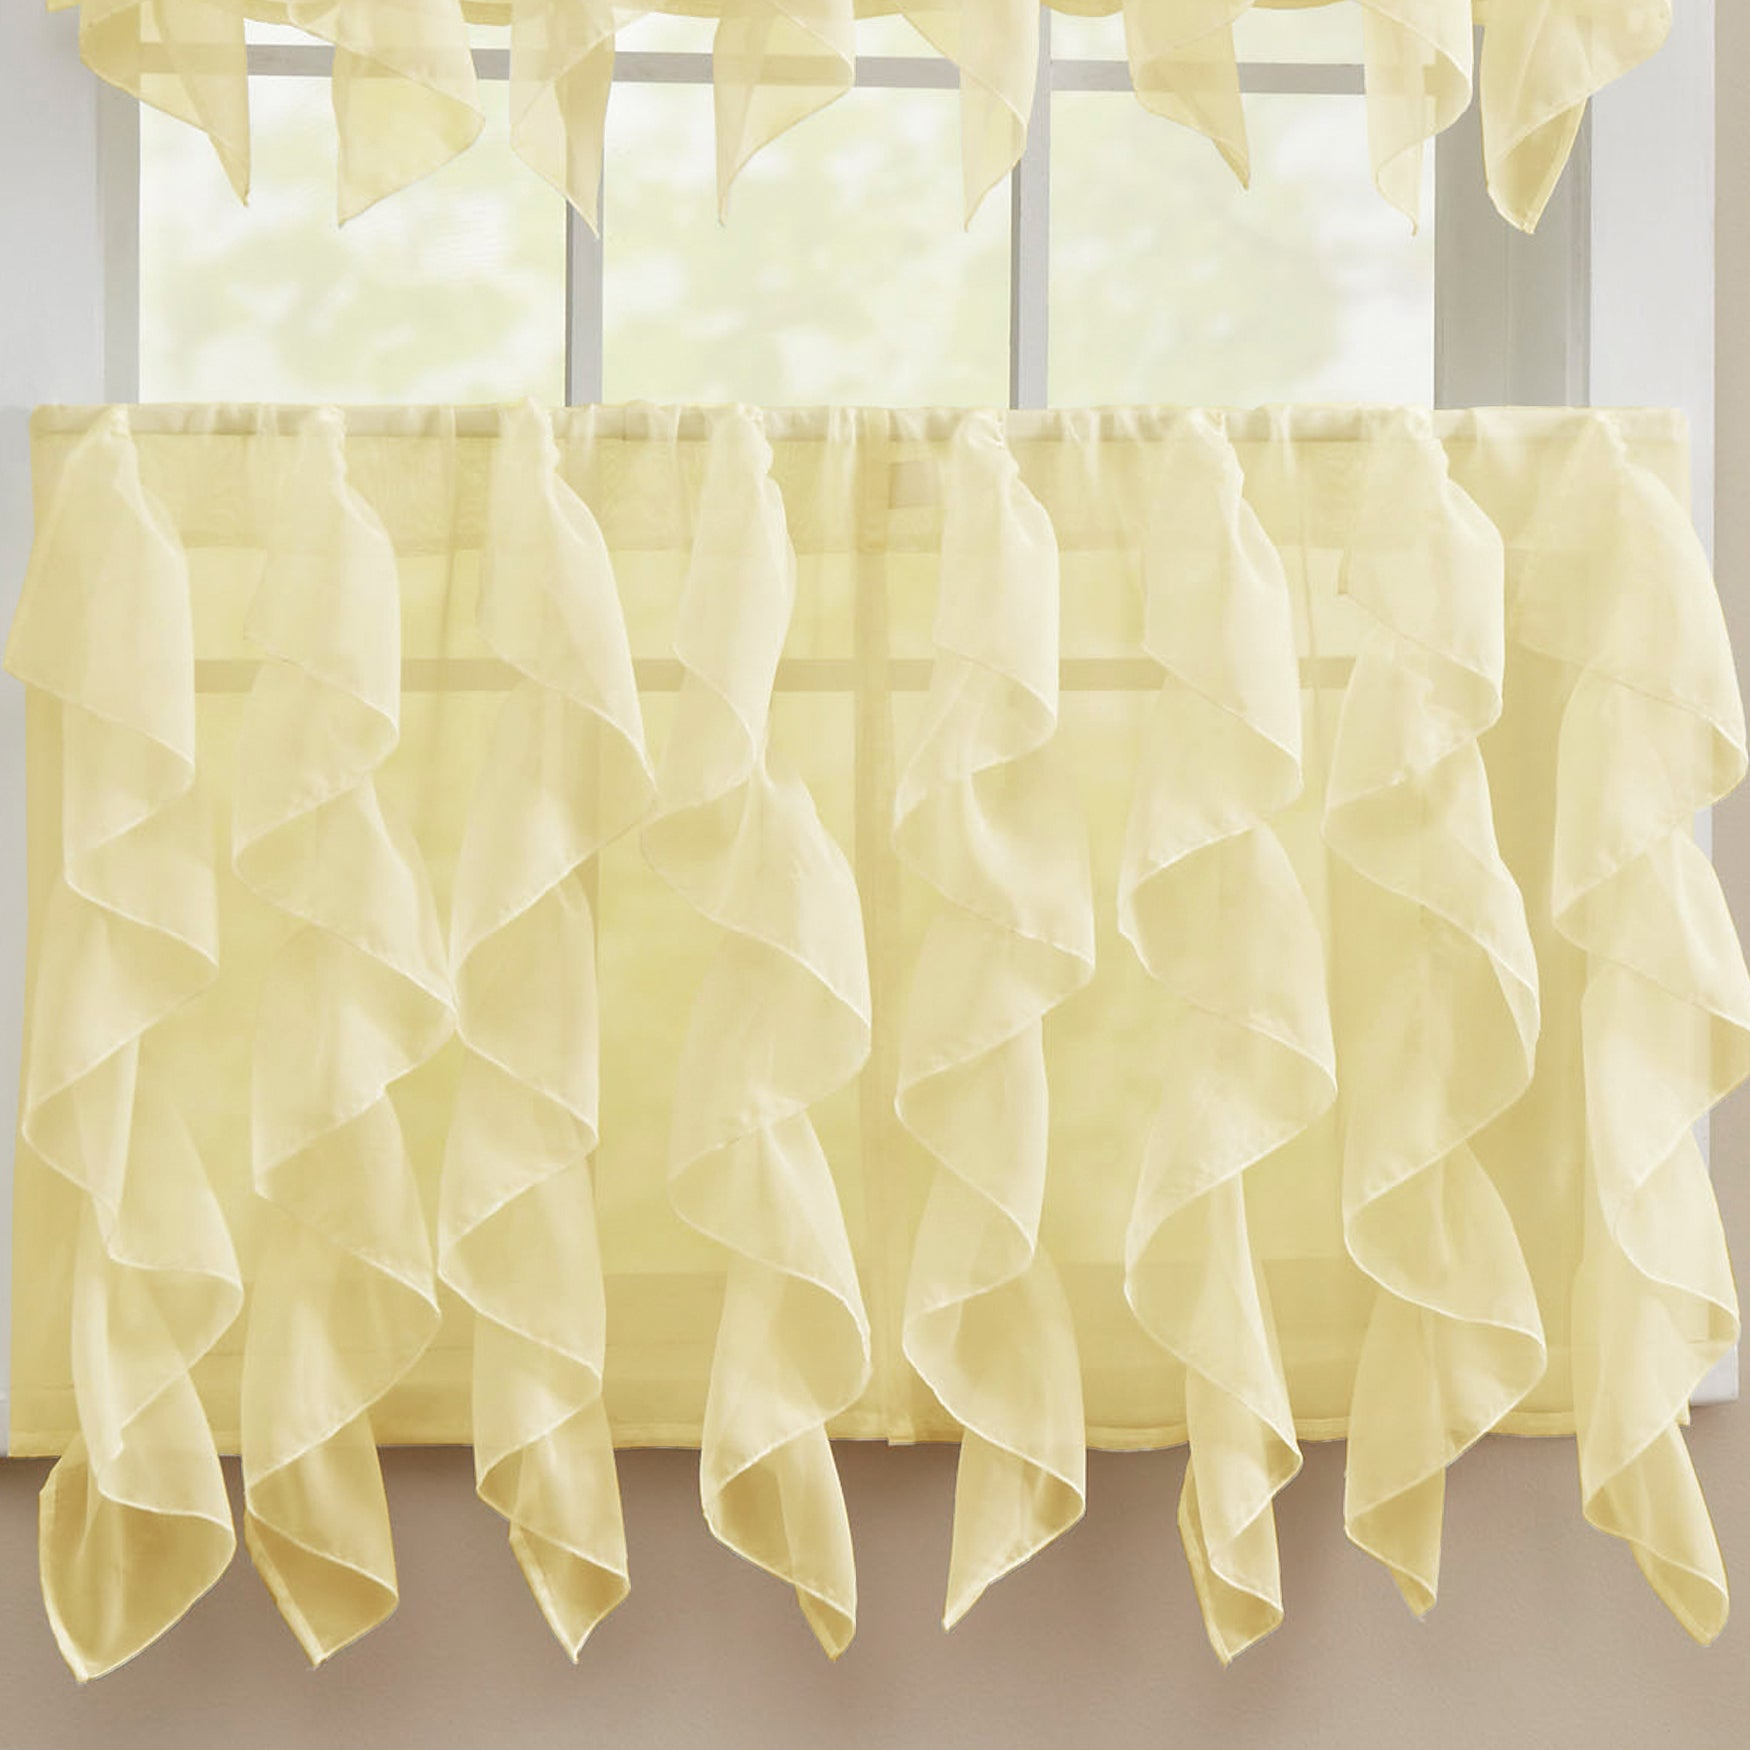 Popular Chic Sheer Voile Vertical Ruffled Tier Window Curtain Valance and  PQ89